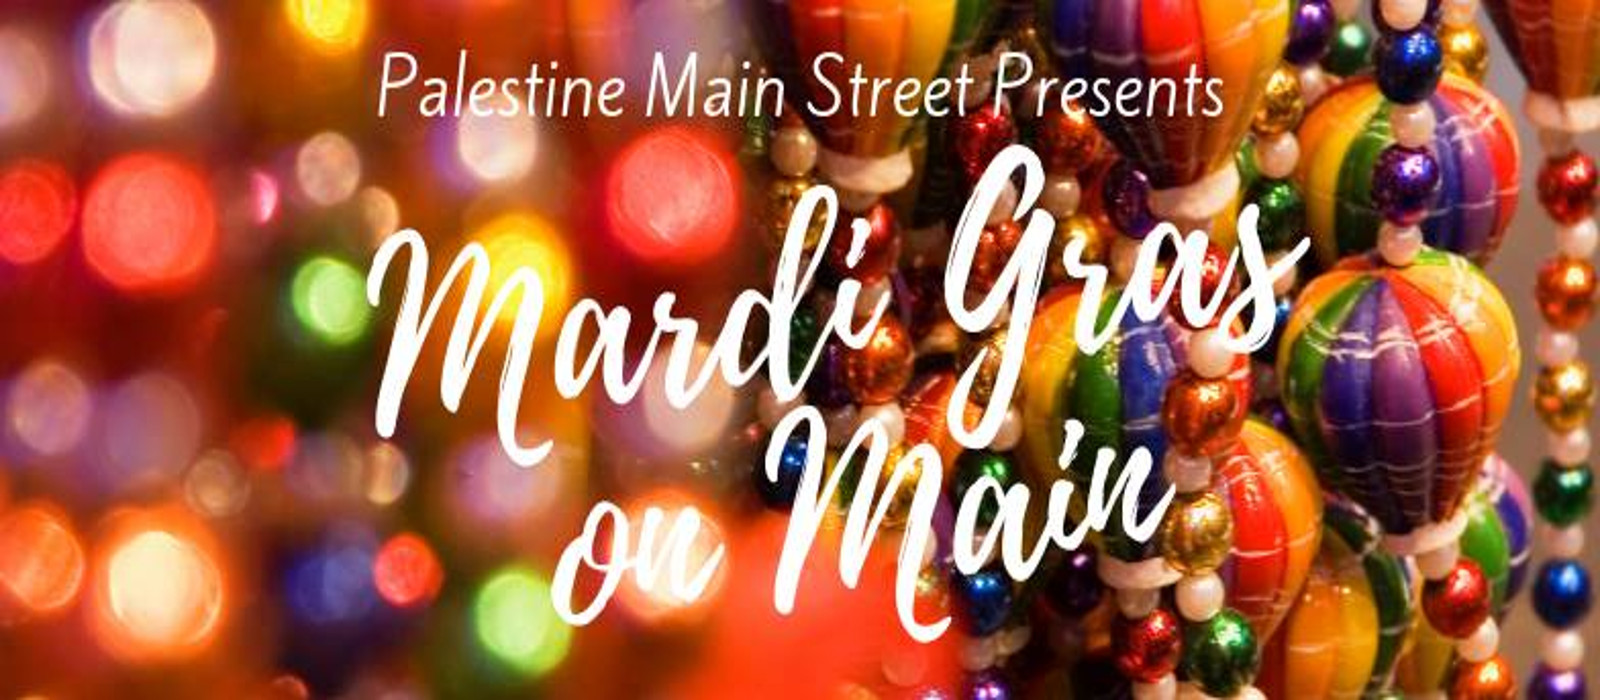 Mardi Gras on Main Street Brings Mardi Gras to You